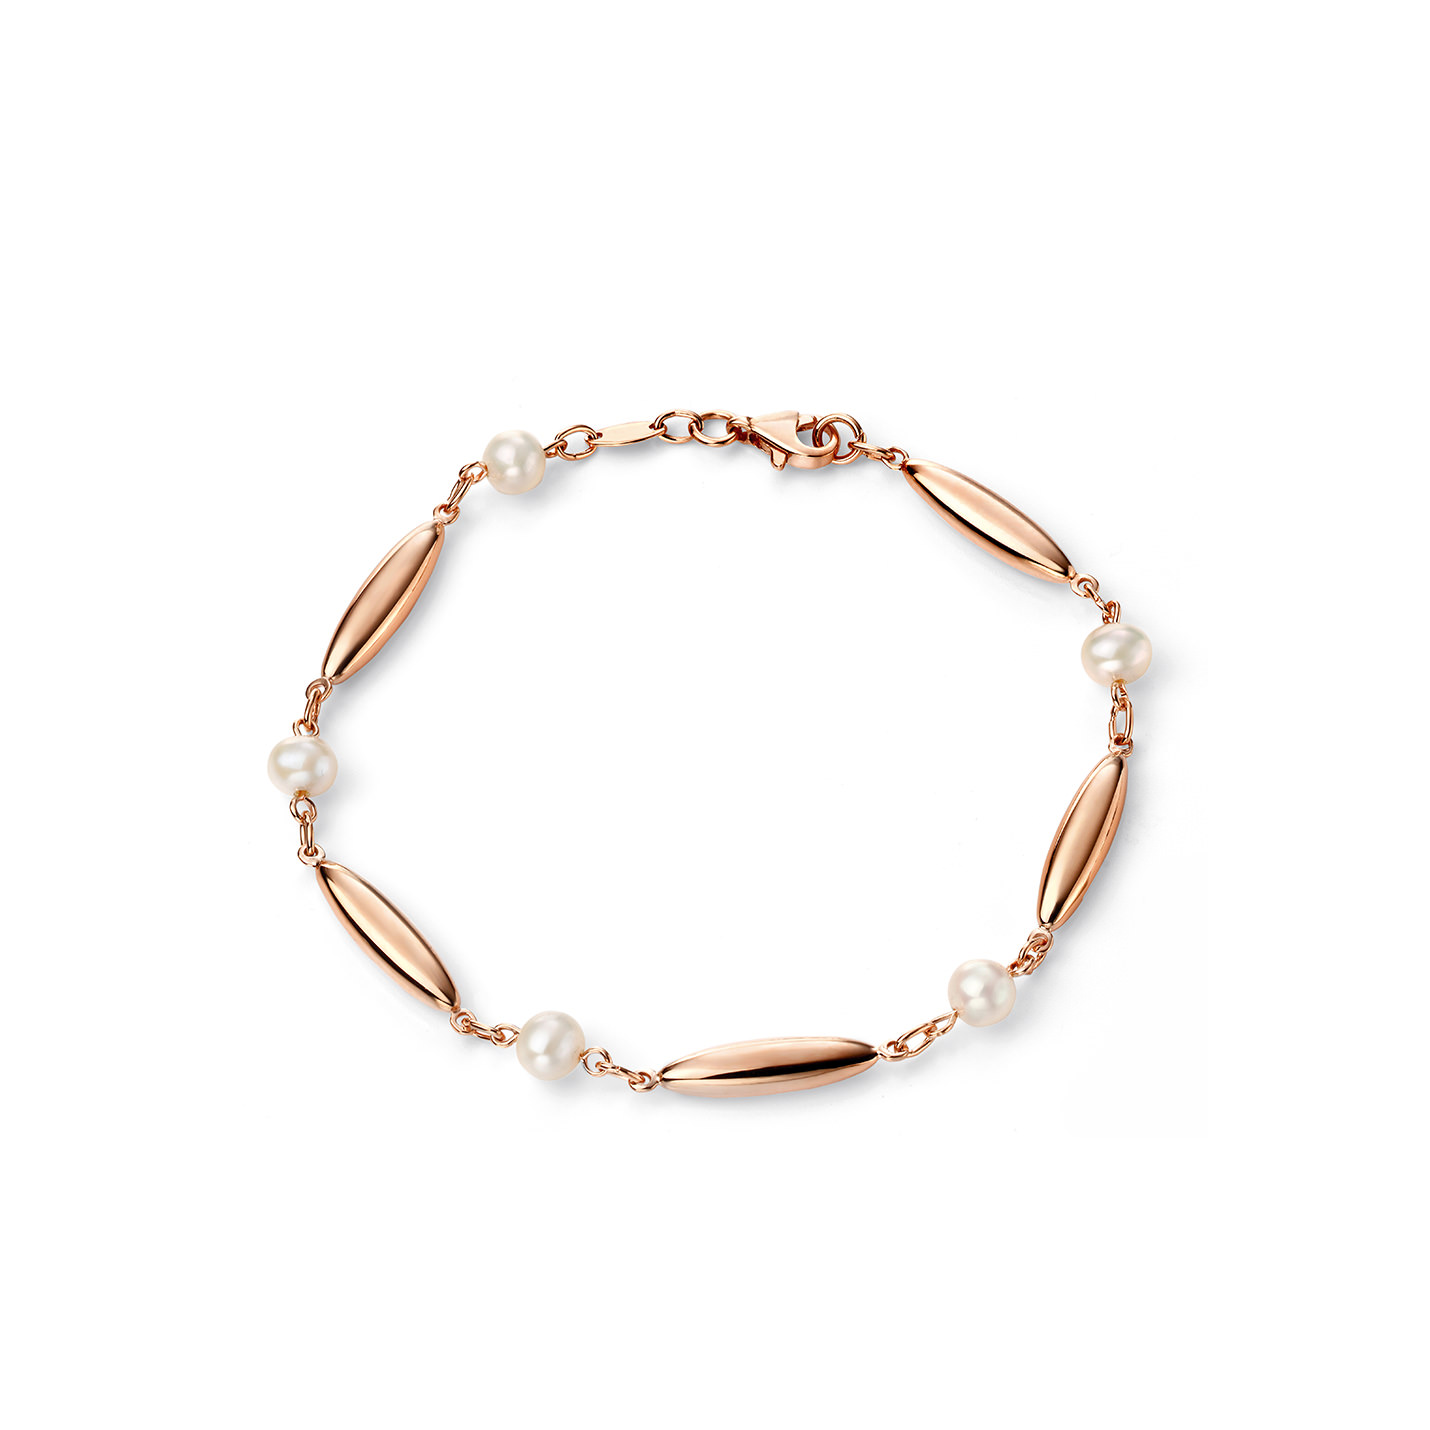 9ct. rose gold and pearl bracelet.  Length: 19cm